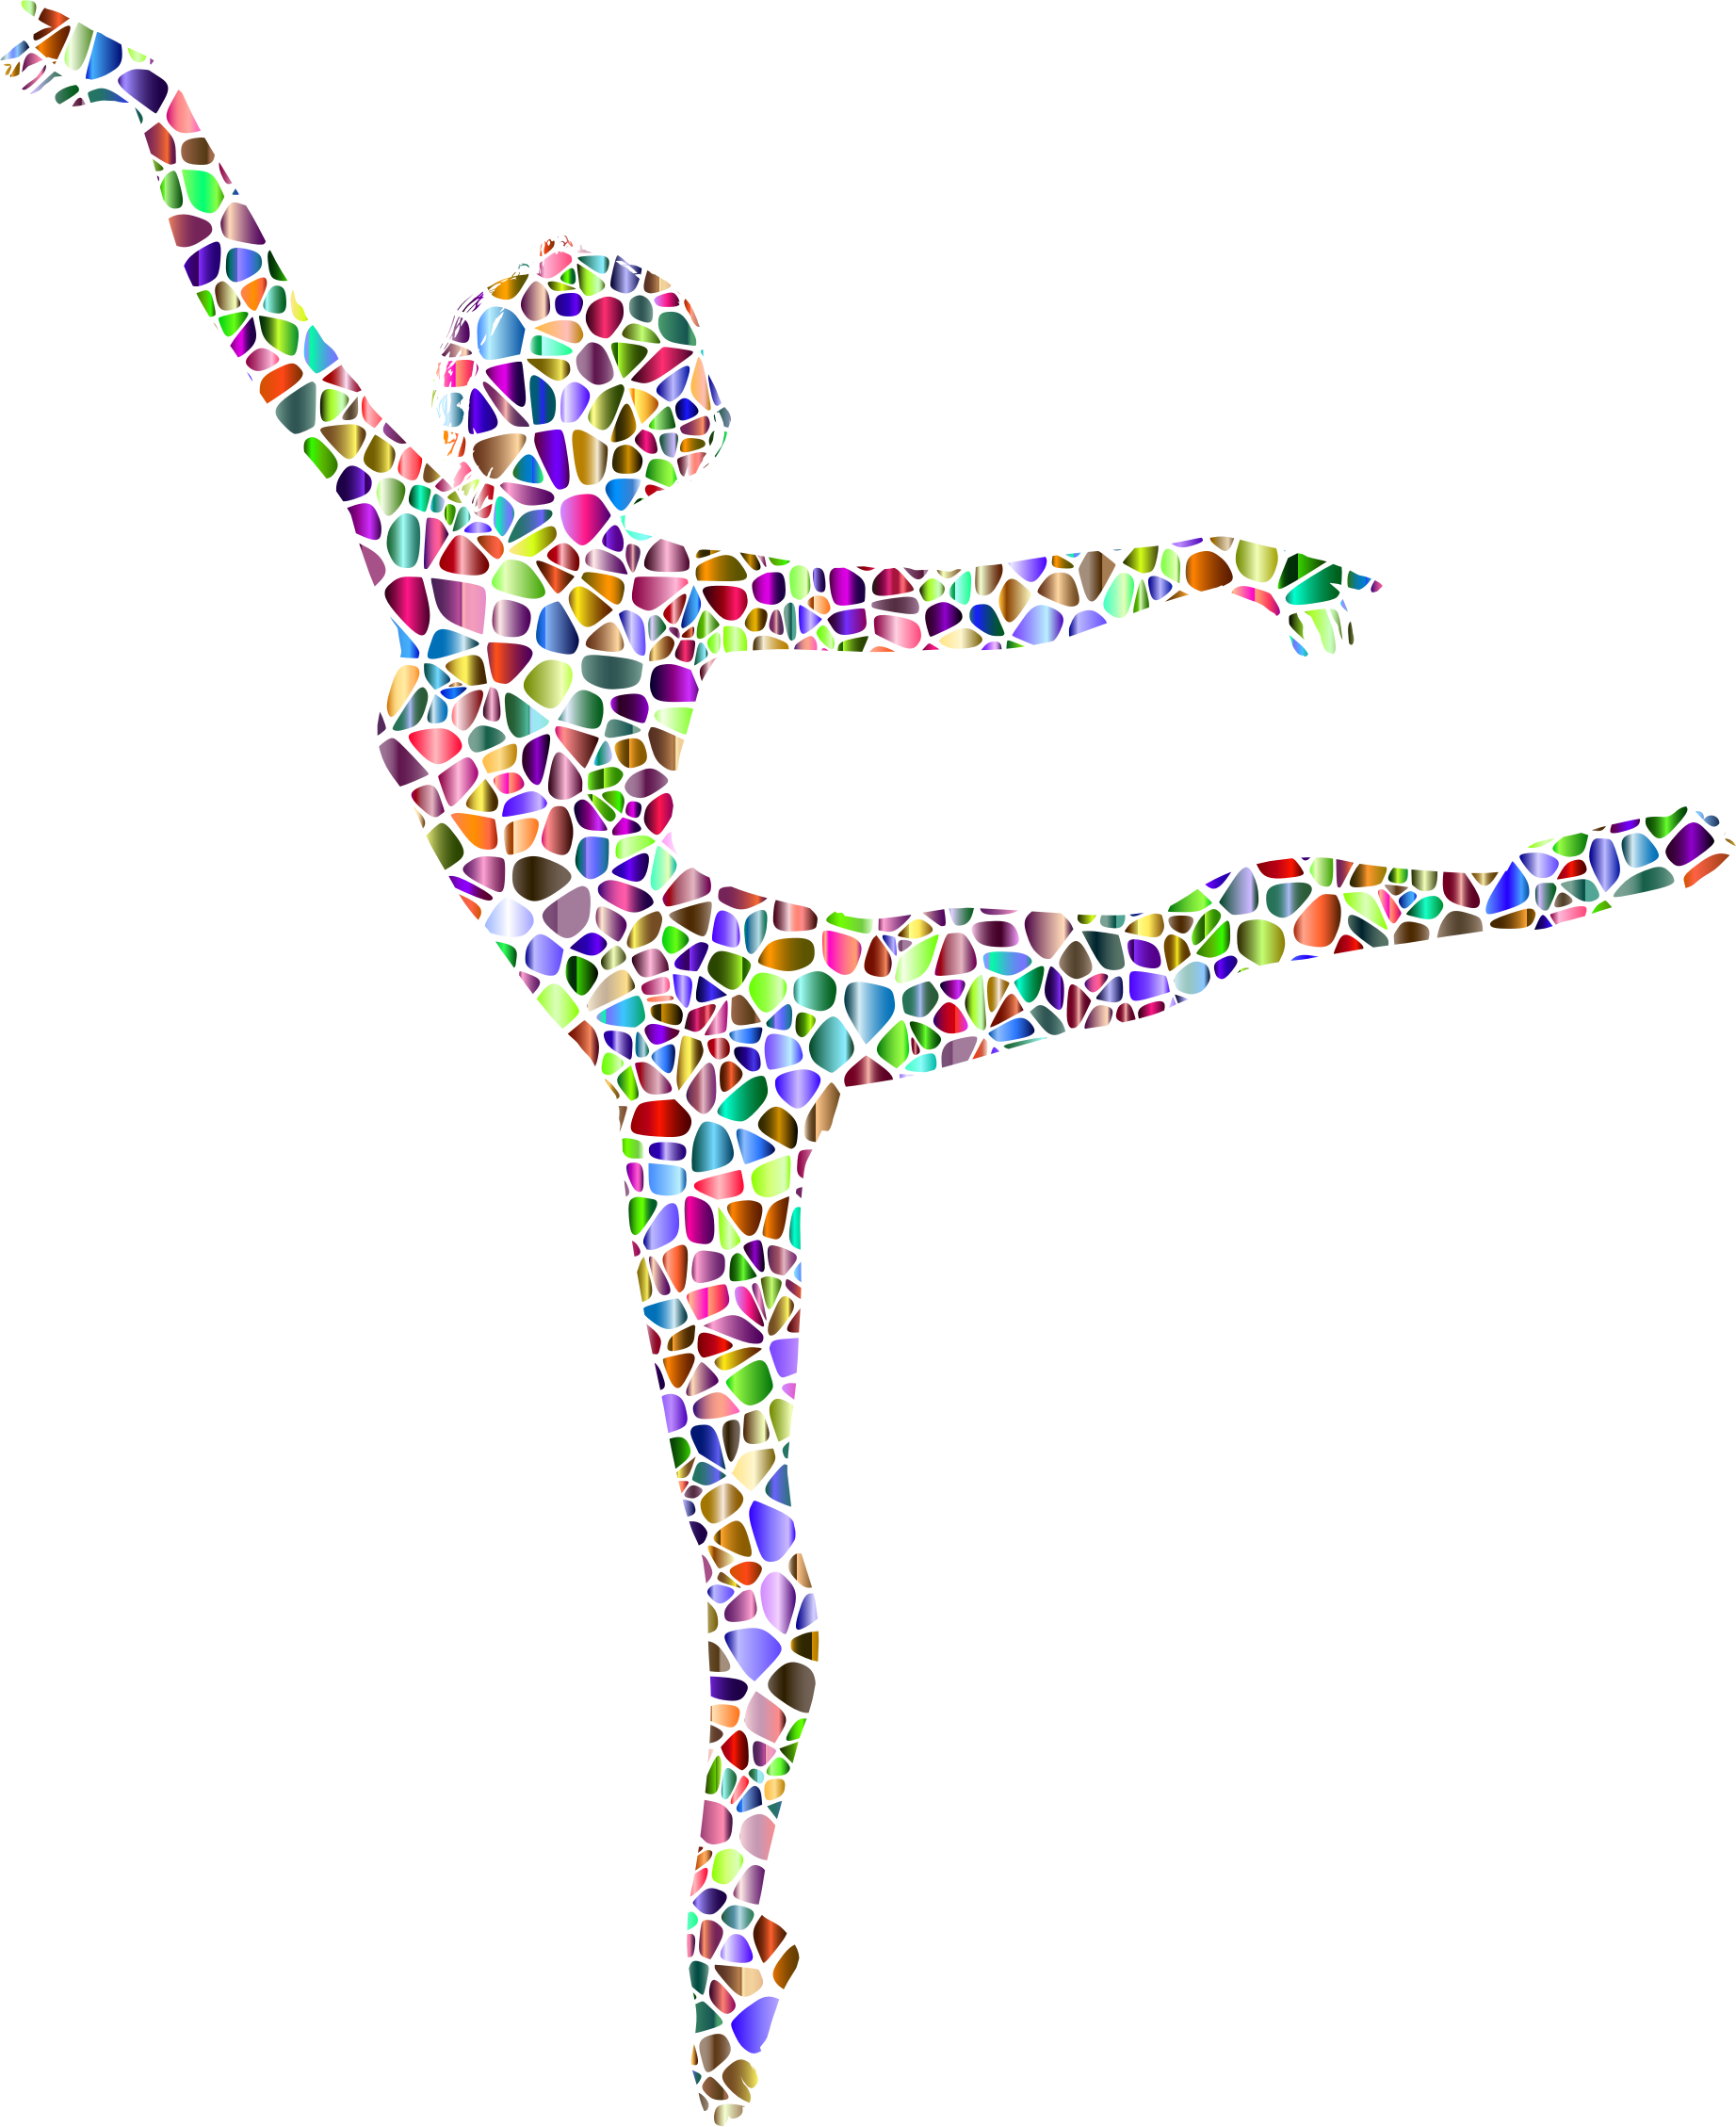 Polychromatic Tiled Lithe Dancing Woman Silhouette No Background by GDJ